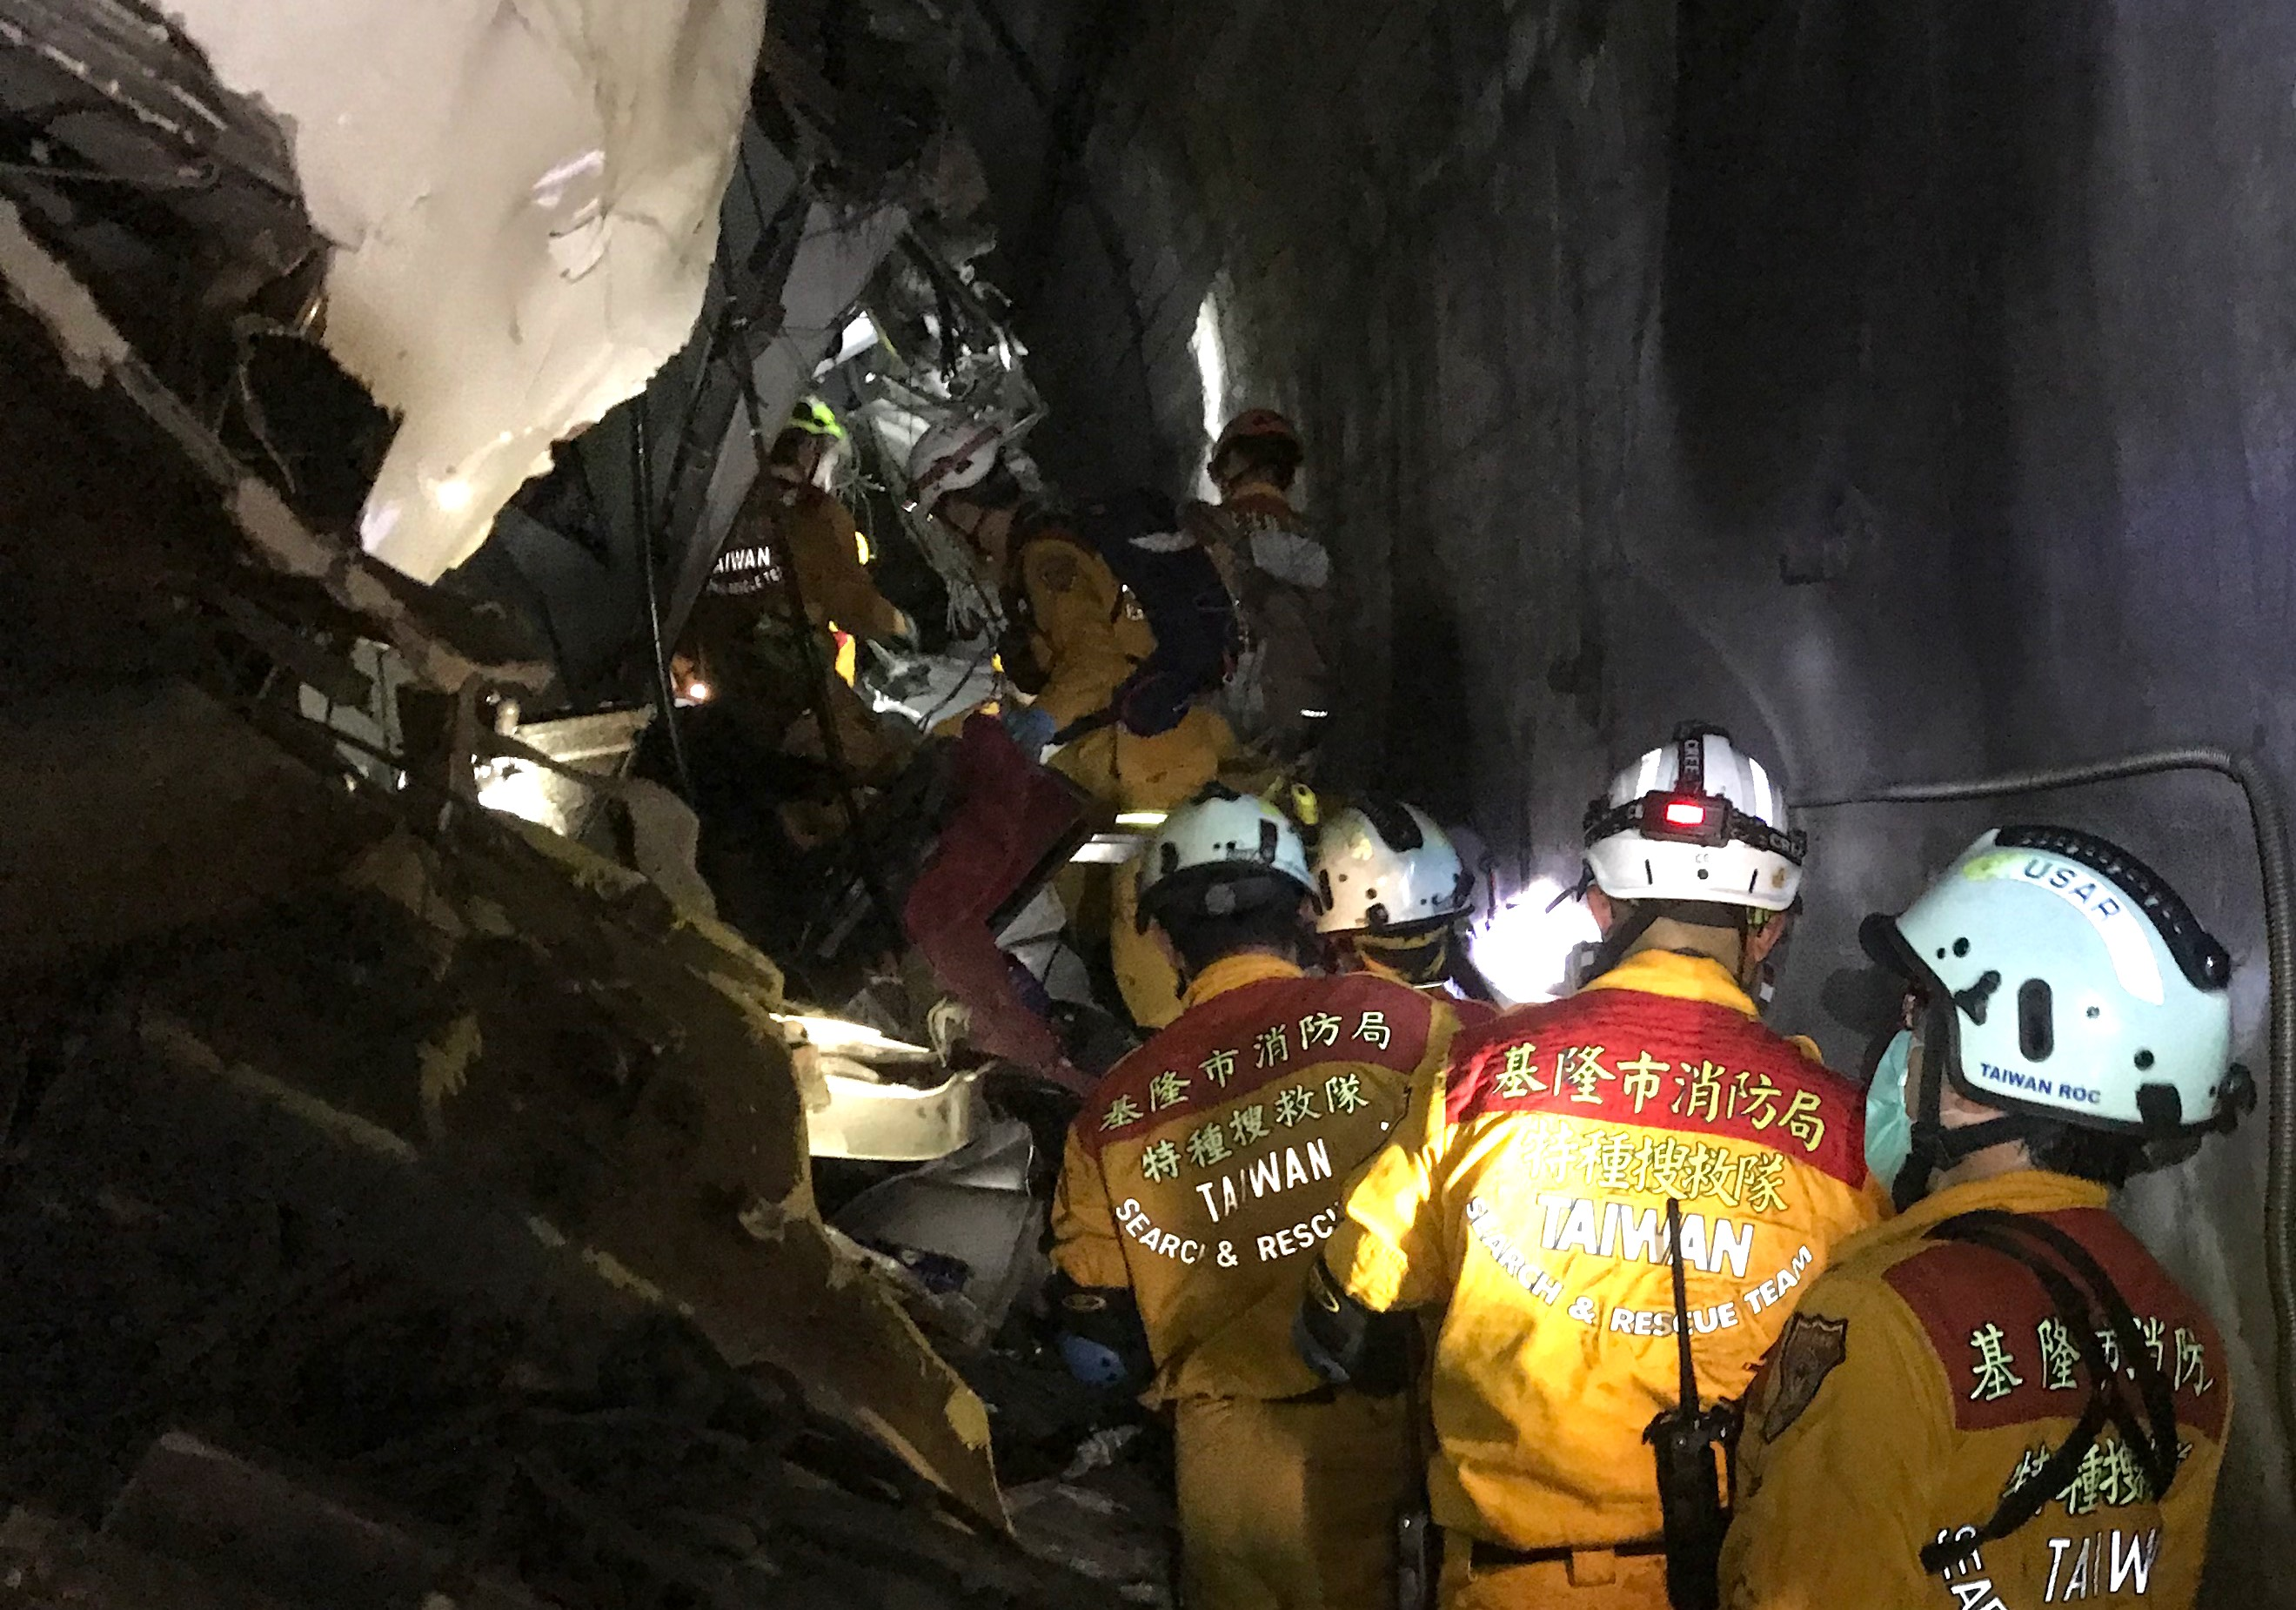 Deadly train derailment in Taiwan kills 48